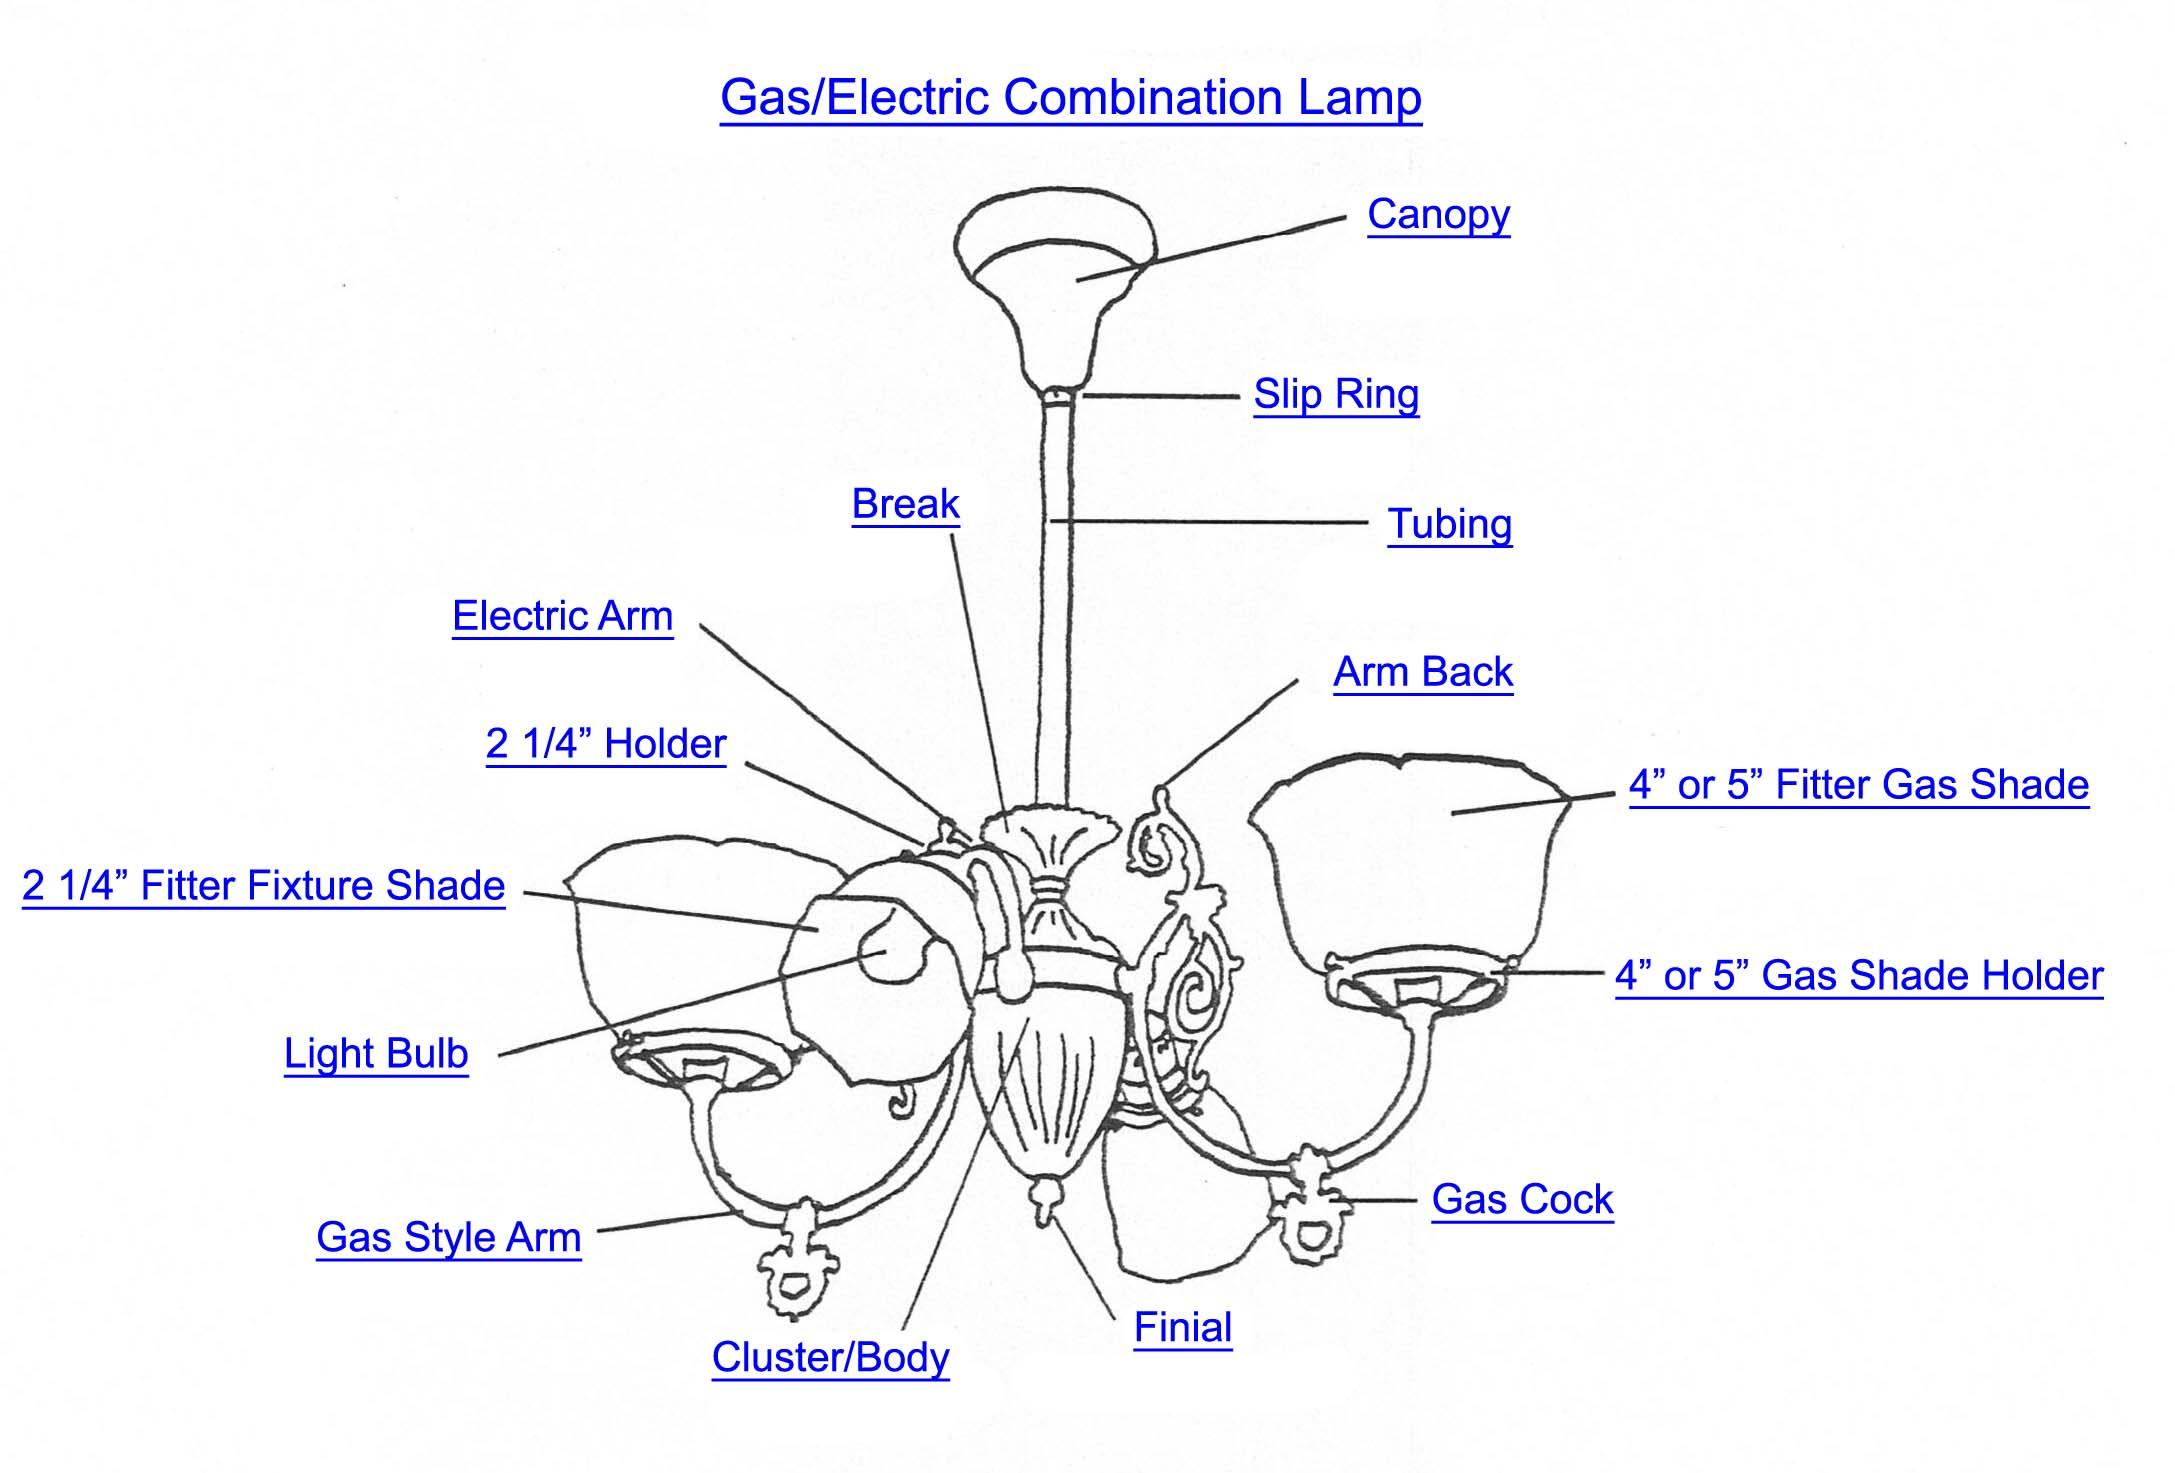 Gas electric combination lamp part index aloadofball Image collections